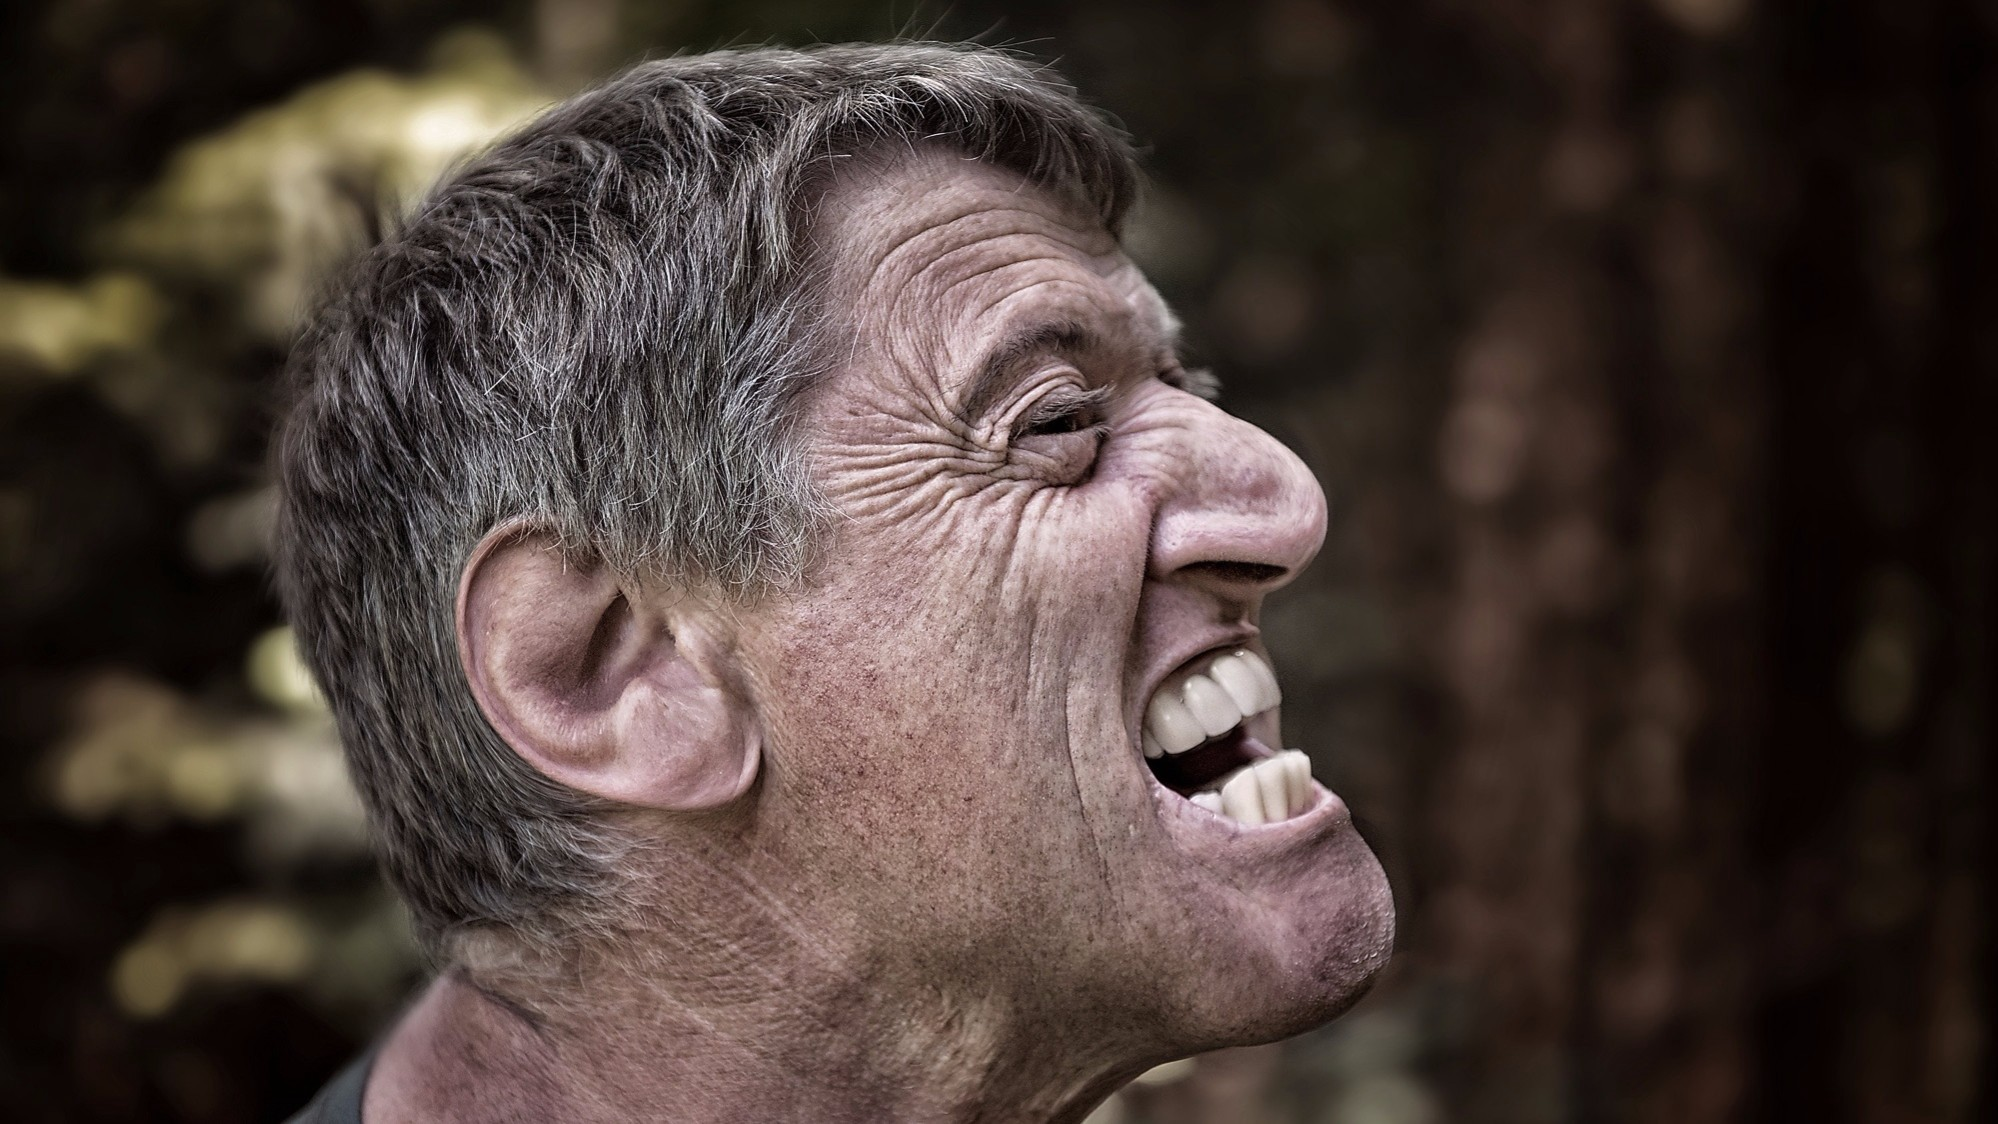 Six Doable Ways to Control Your ANGER and Not Let it Control You!